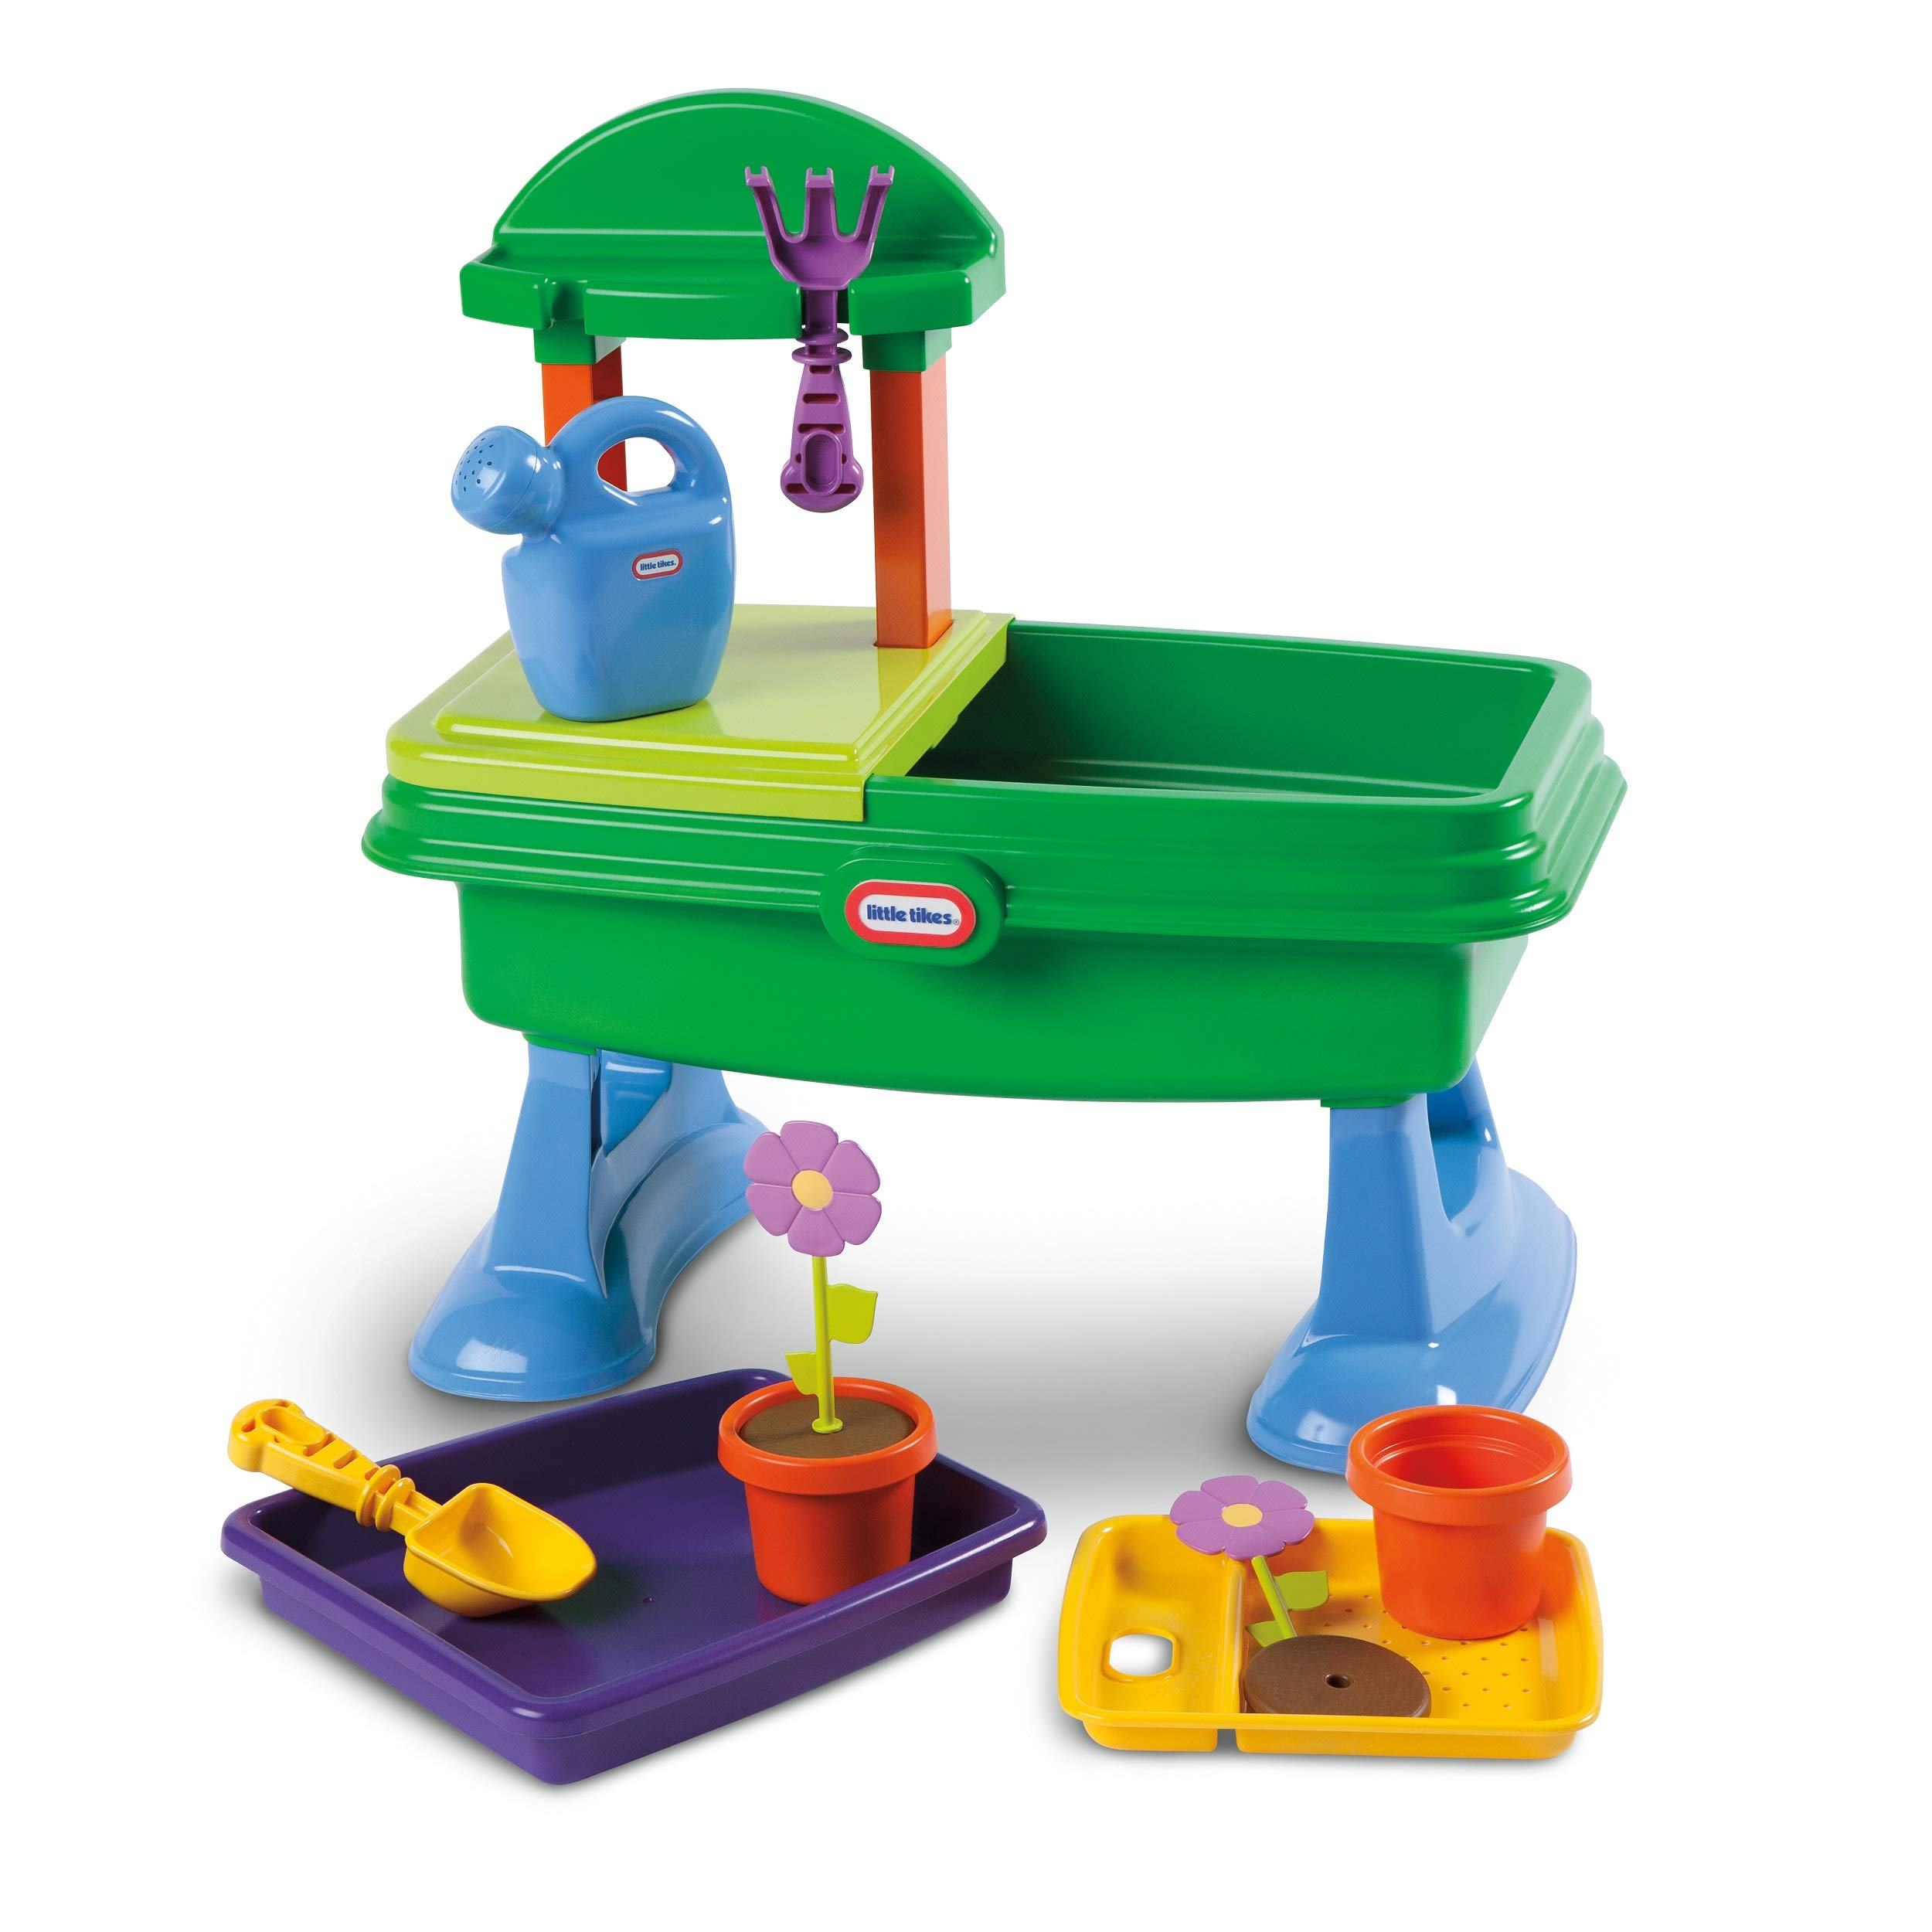 The Little Tikes Garden Table Play Set by Little Tikes